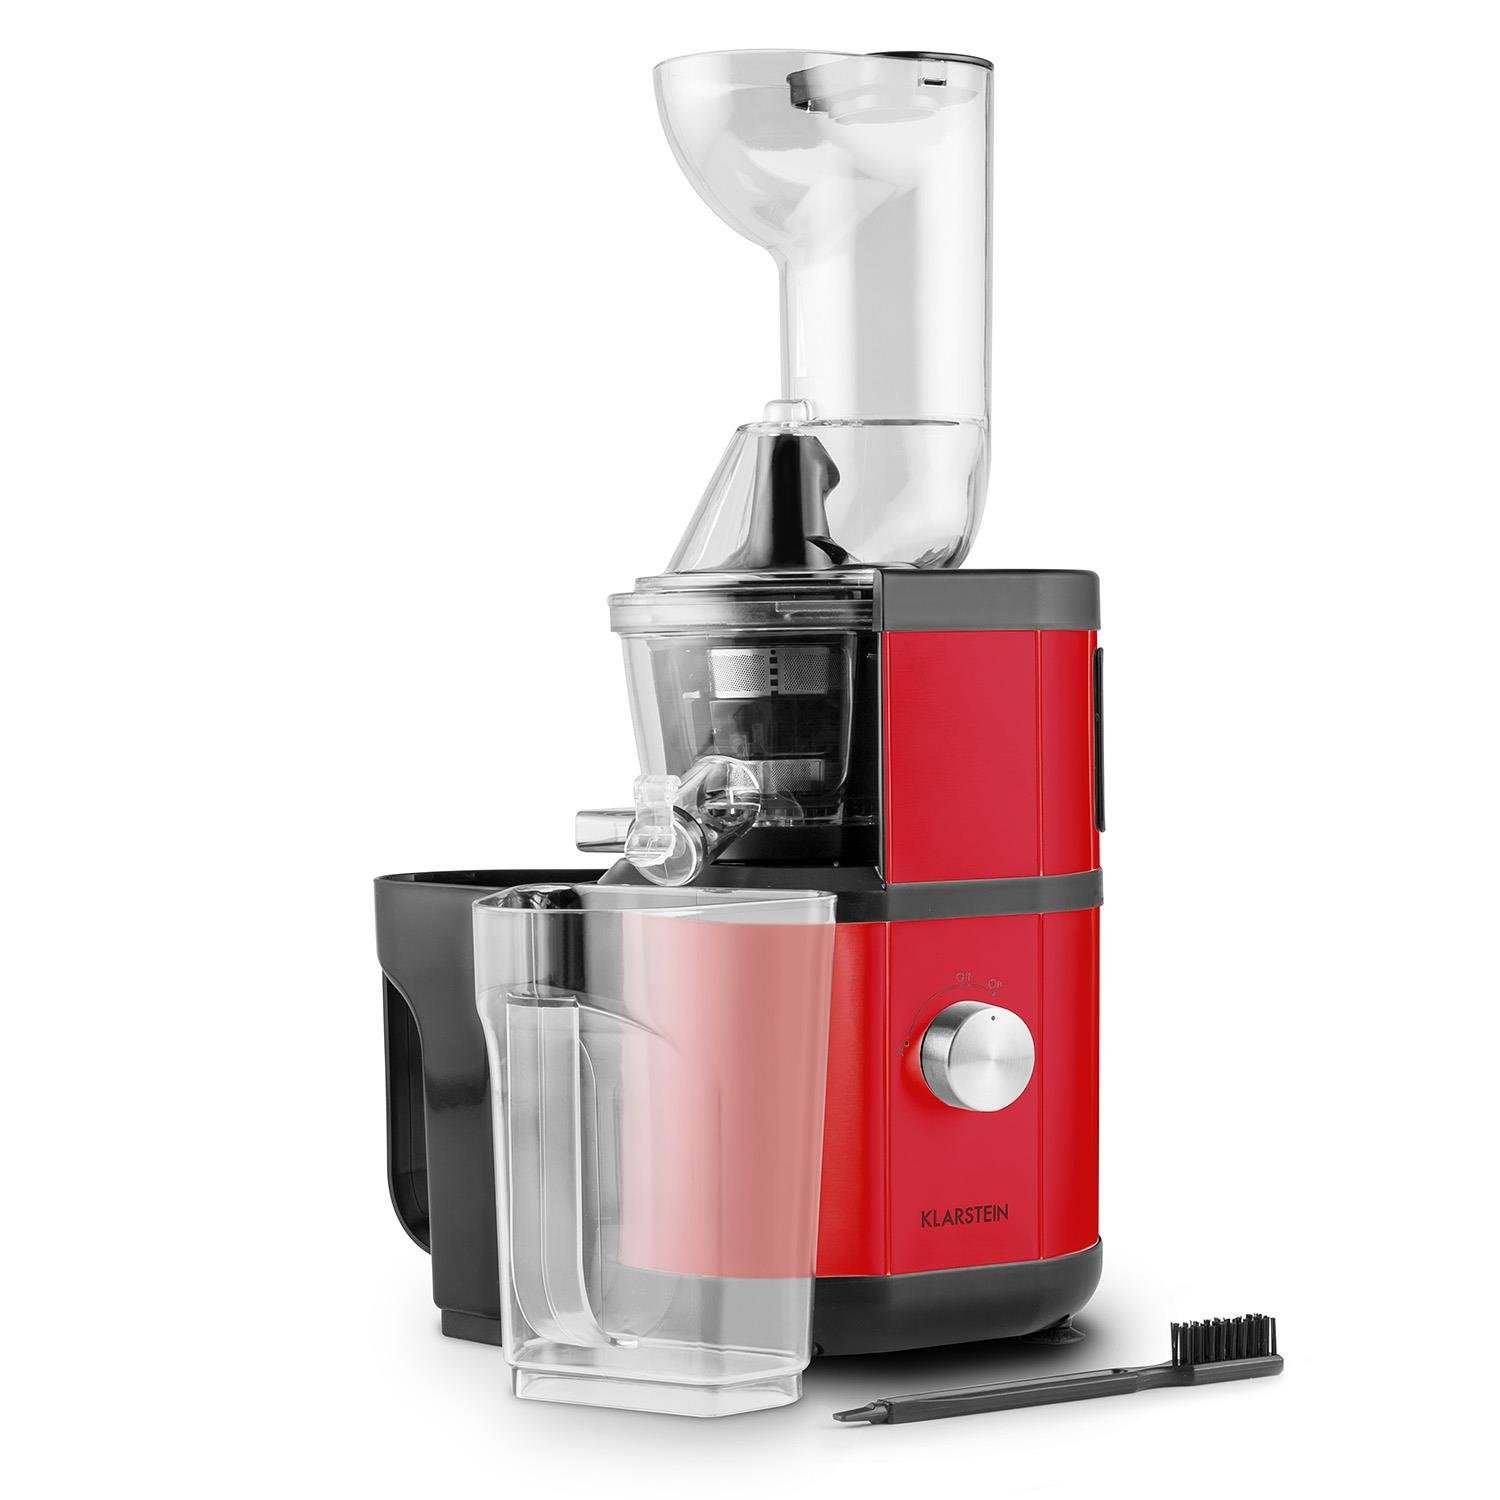 Klarstein Fruitberry Slow Vertical Juicer • No Fruit or Seeds Remain • 2 Containers with 1000ml Capacity Included • 400W • 60 RPM • Filler Tube with 8.5cm Diameter • Stainless Microsieve • Red